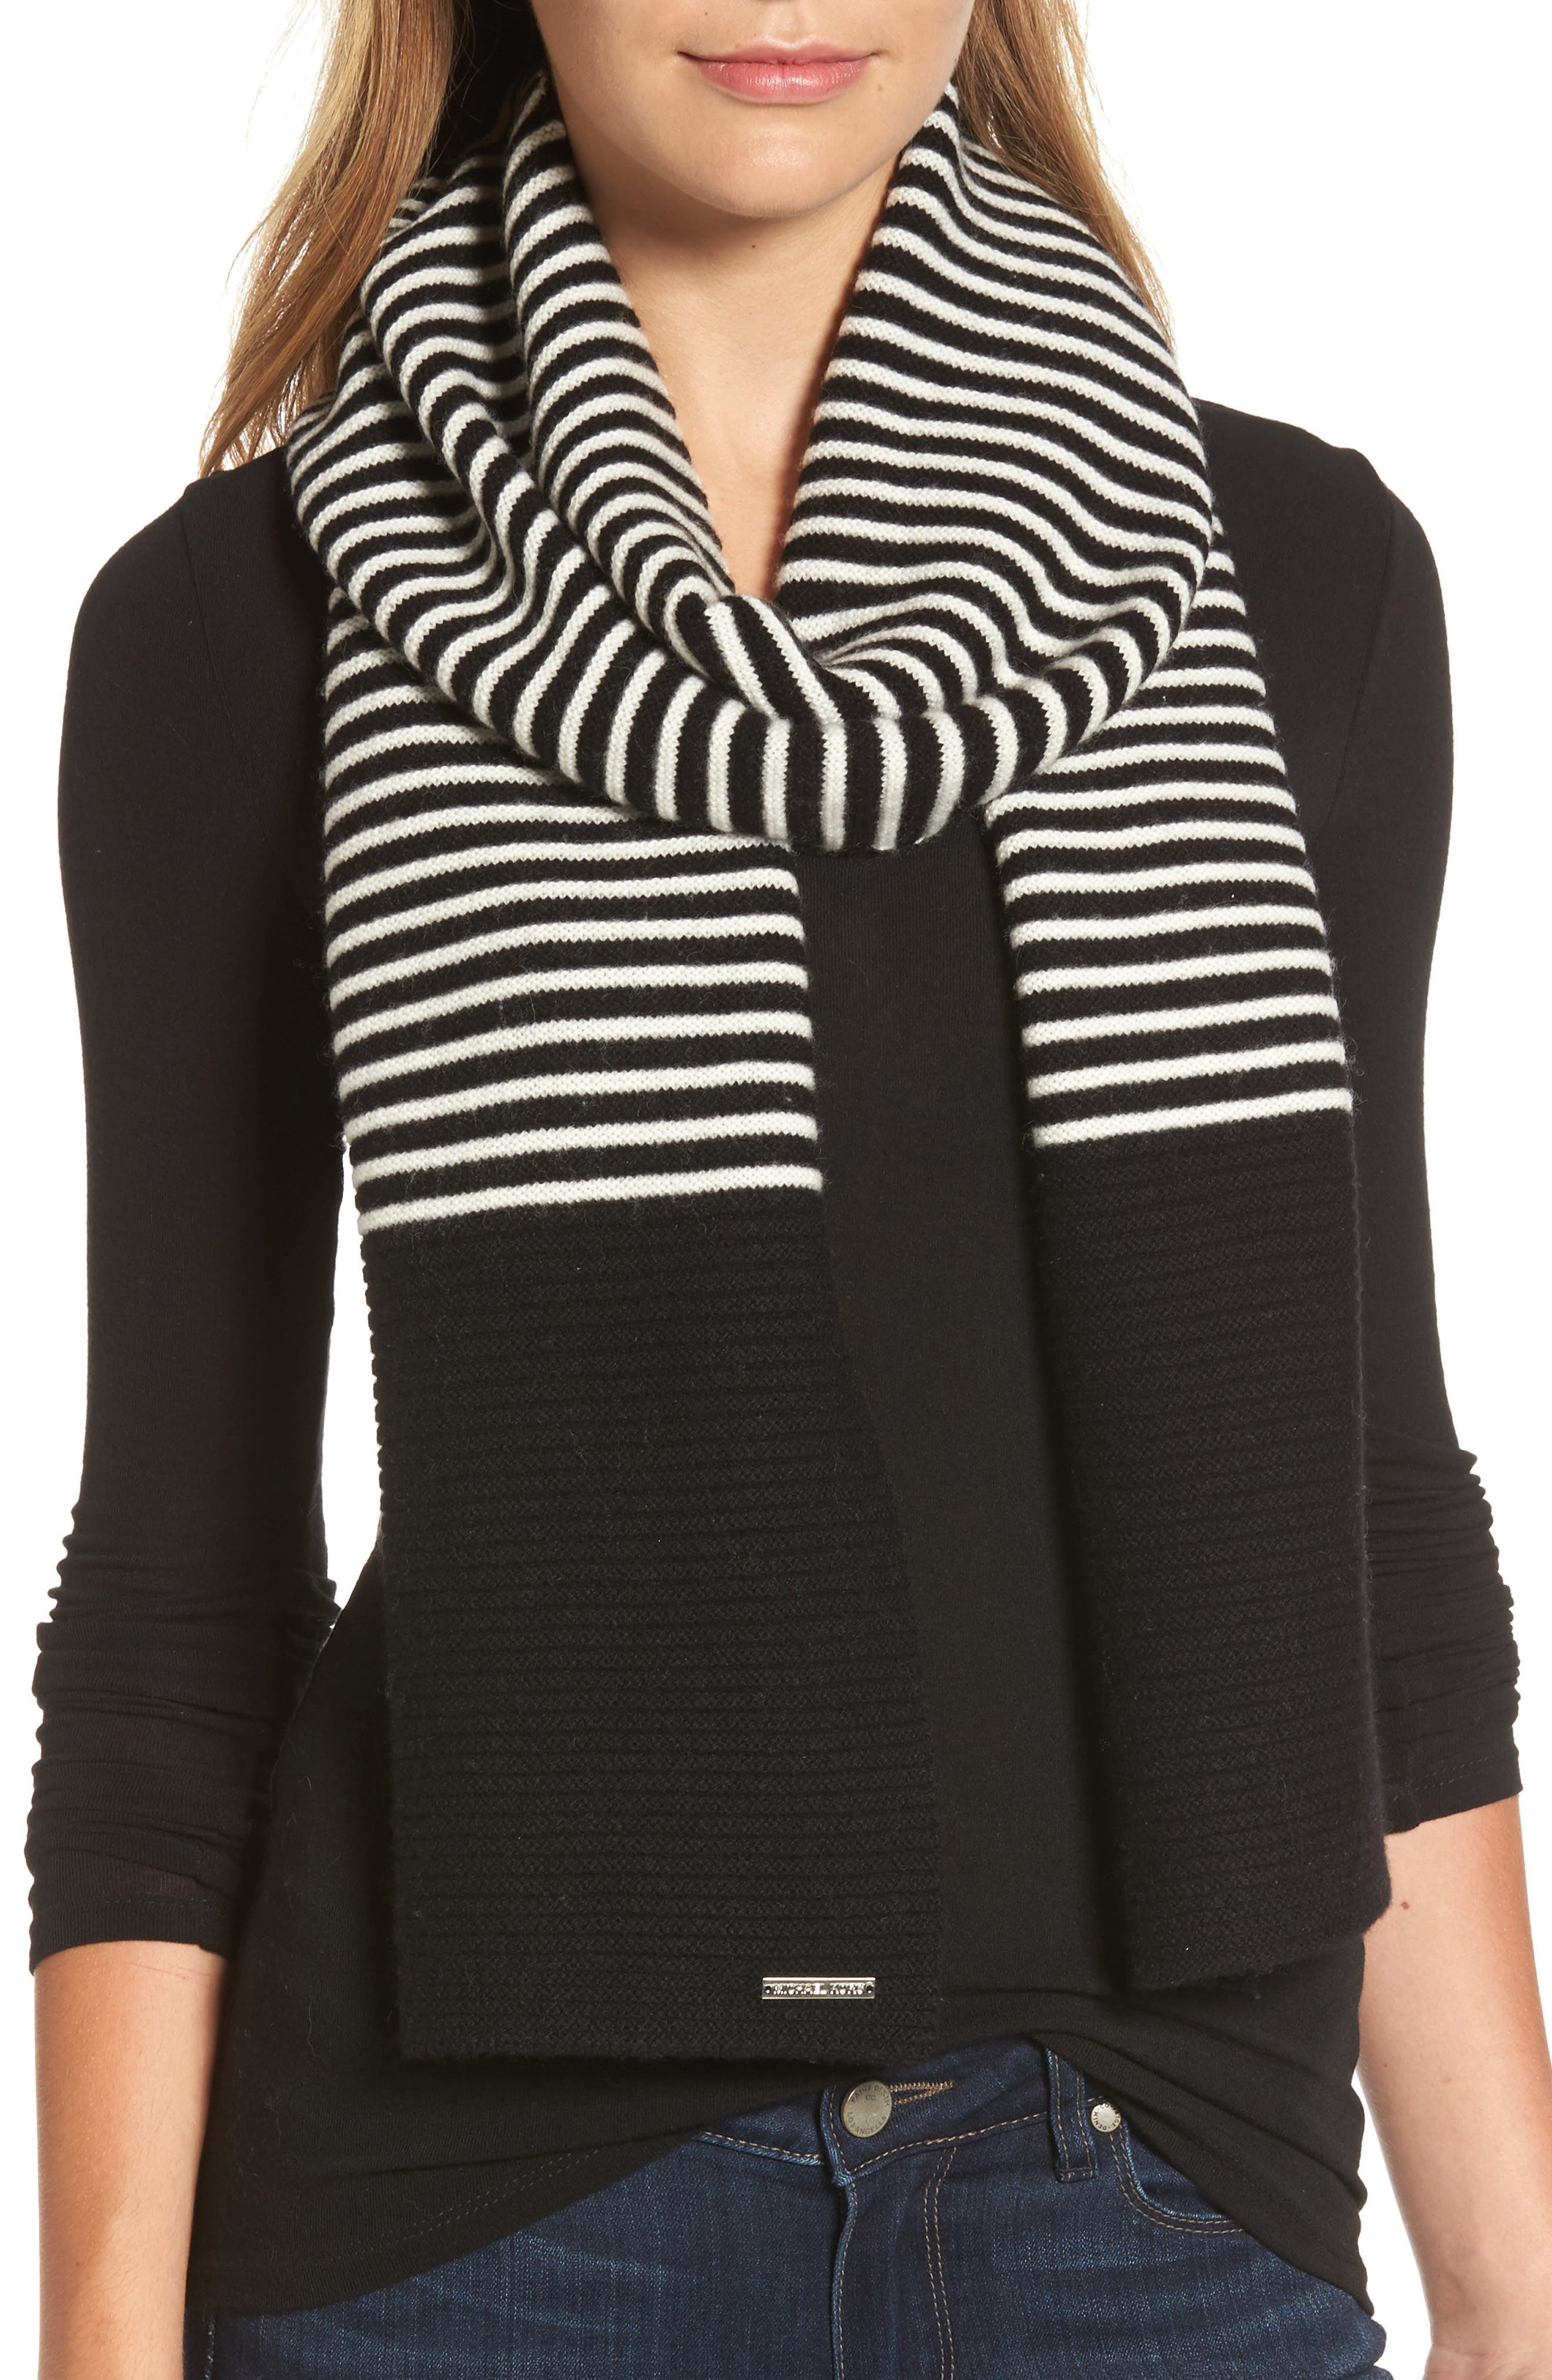 Double Links Wool & Cashmere Scarf,                         Main,                         color, Black/ Cream